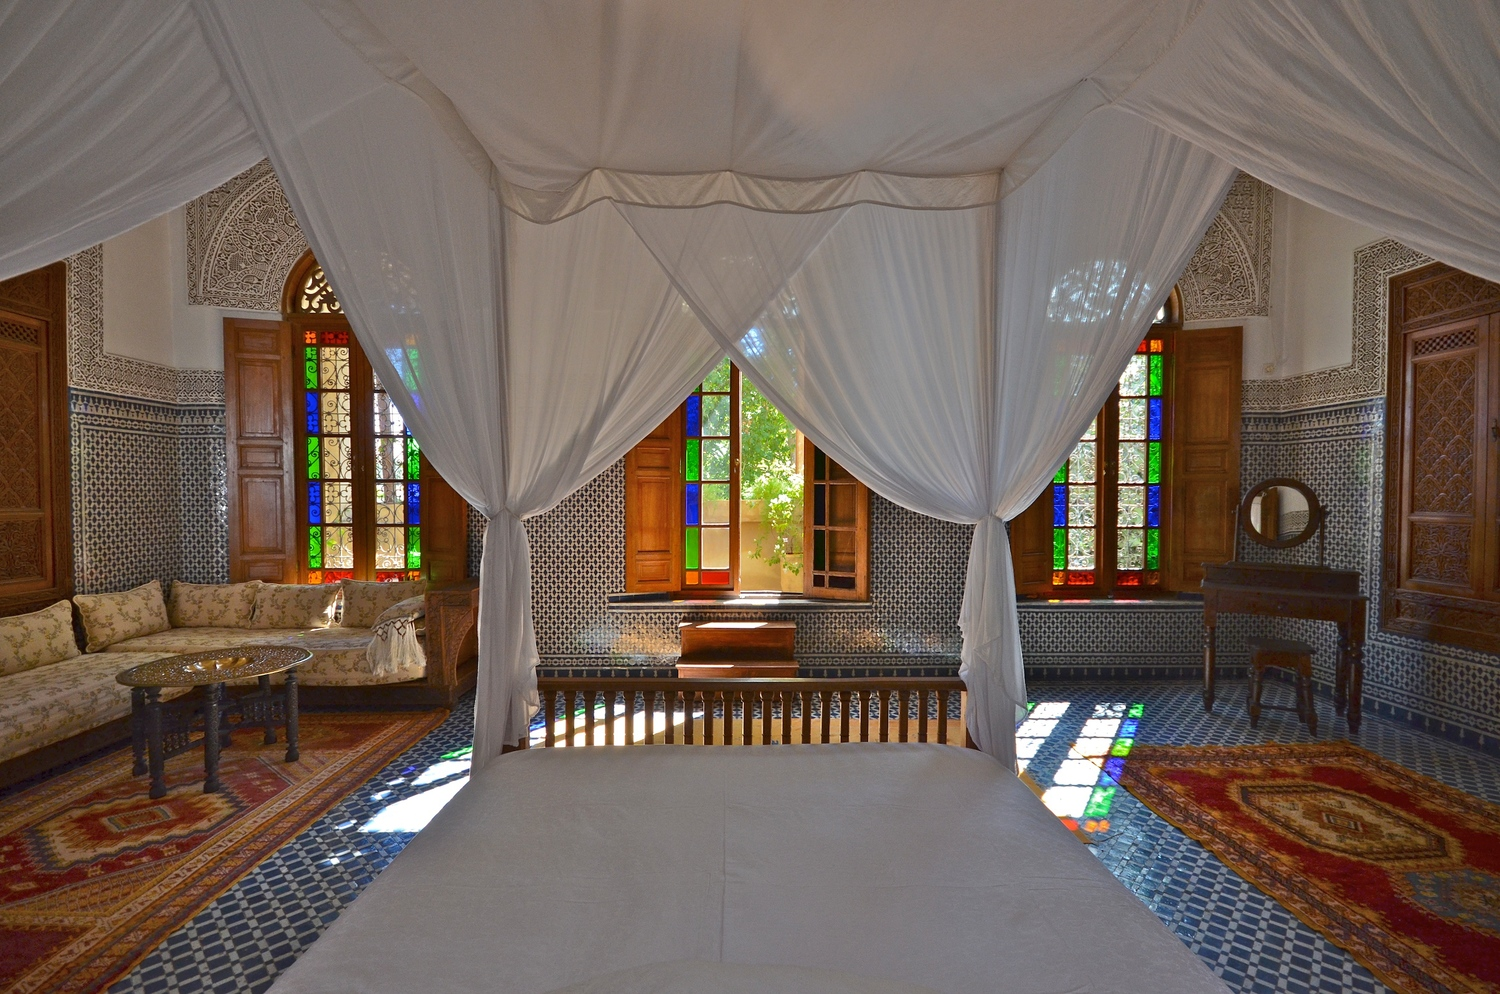 Yasmina Suite is the largest and most ornate  suite  with a private balcony overlooking the medina.